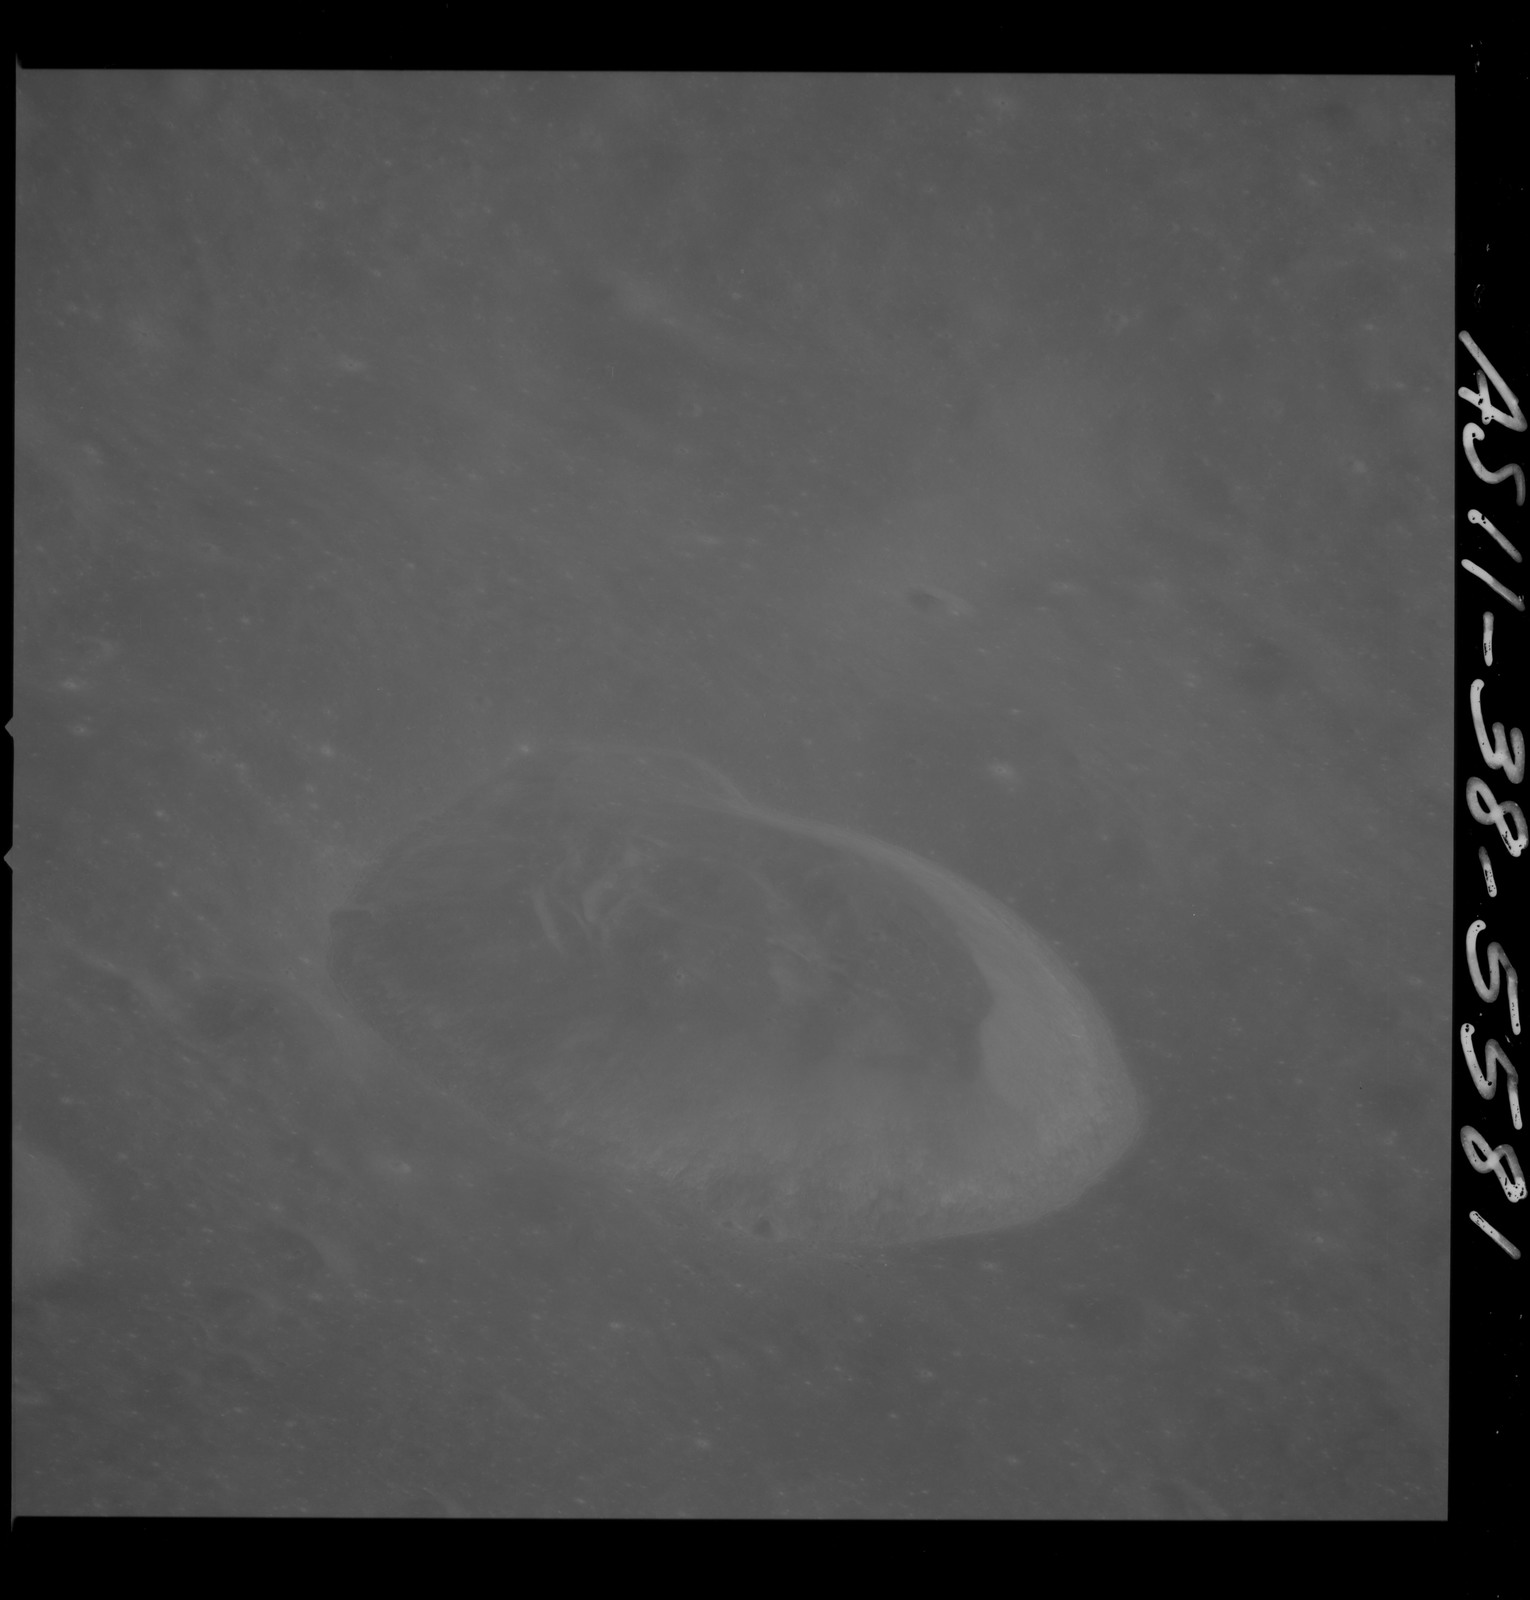 AS11-38-5581 - Apollo 11 - Apollo 11 Mission image - View of Moon, west of Crater 292